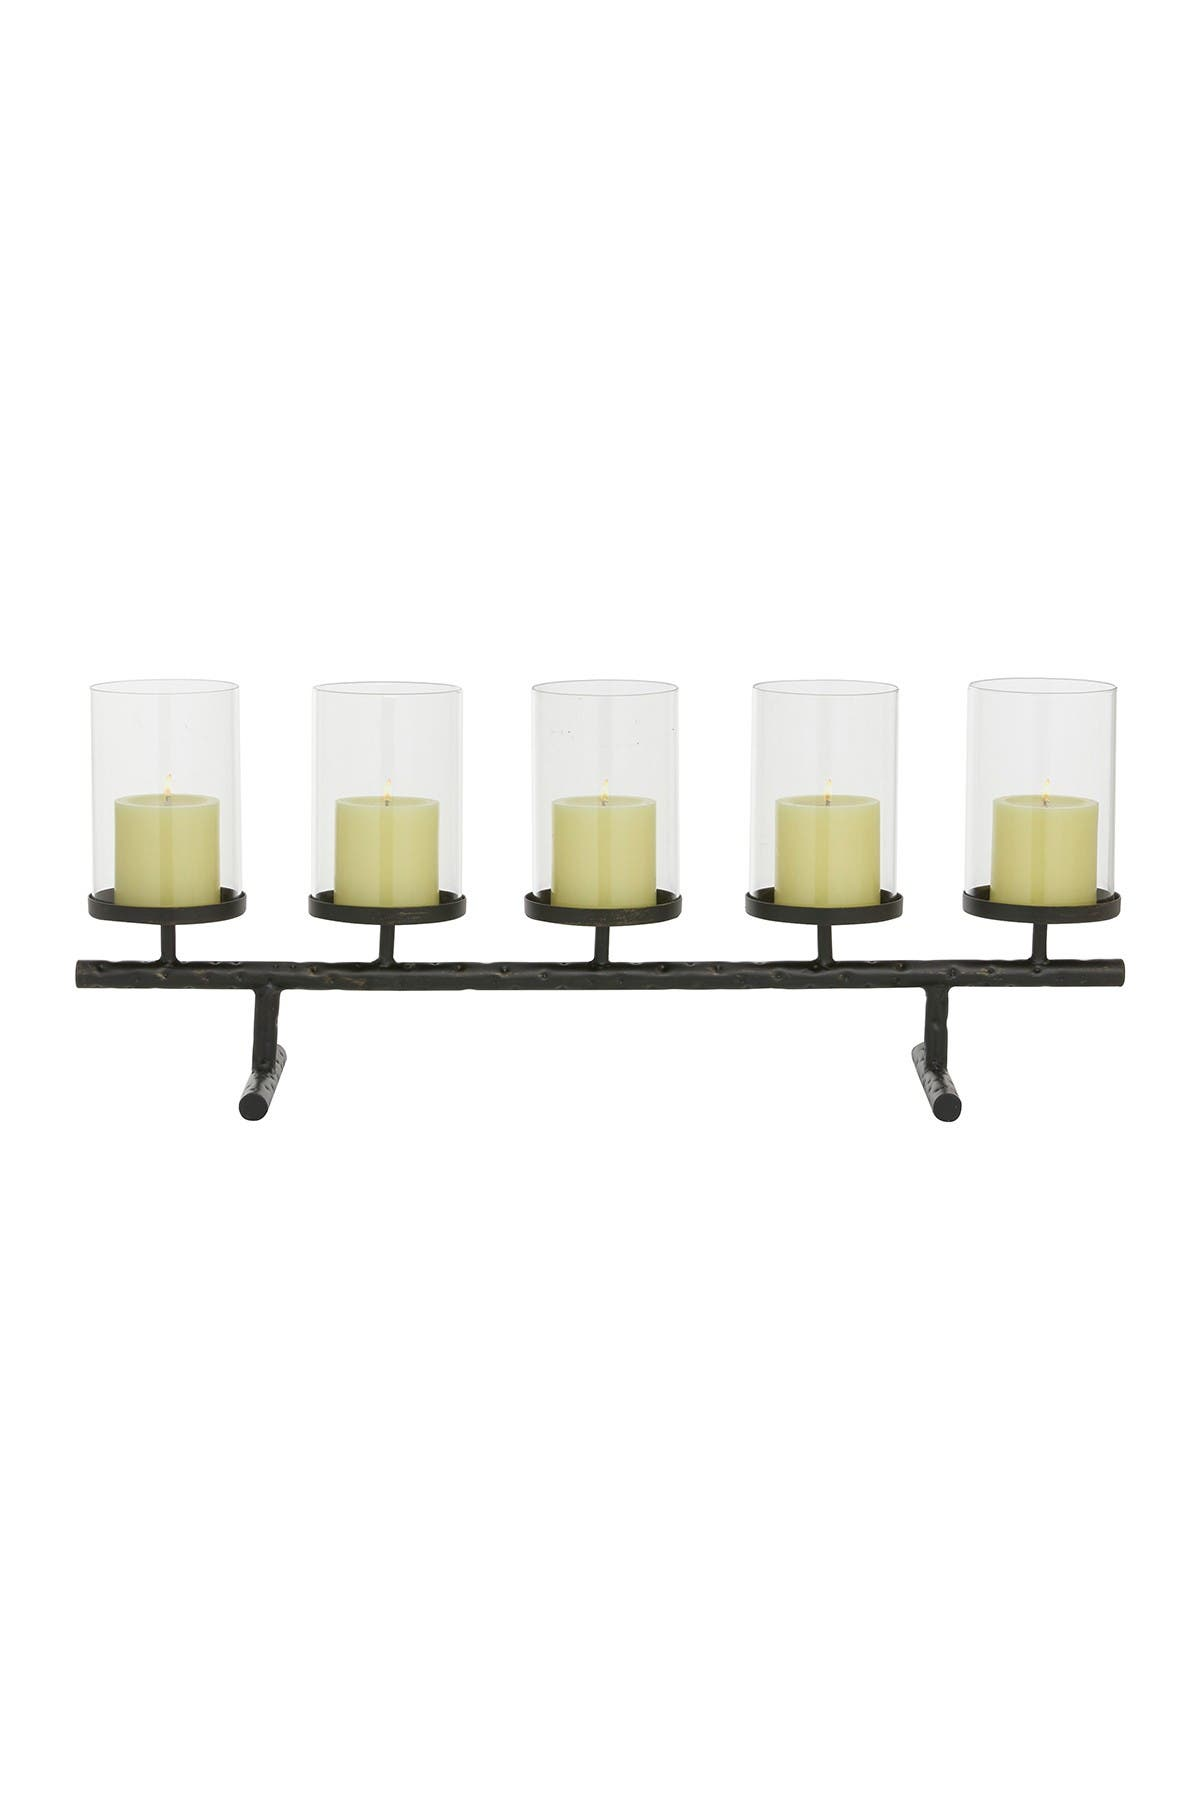 "Image of Willow Row Long Rectangular Hammered Metal And 5-Pillar Glass Candle Holder - 27.5"" X 11"""